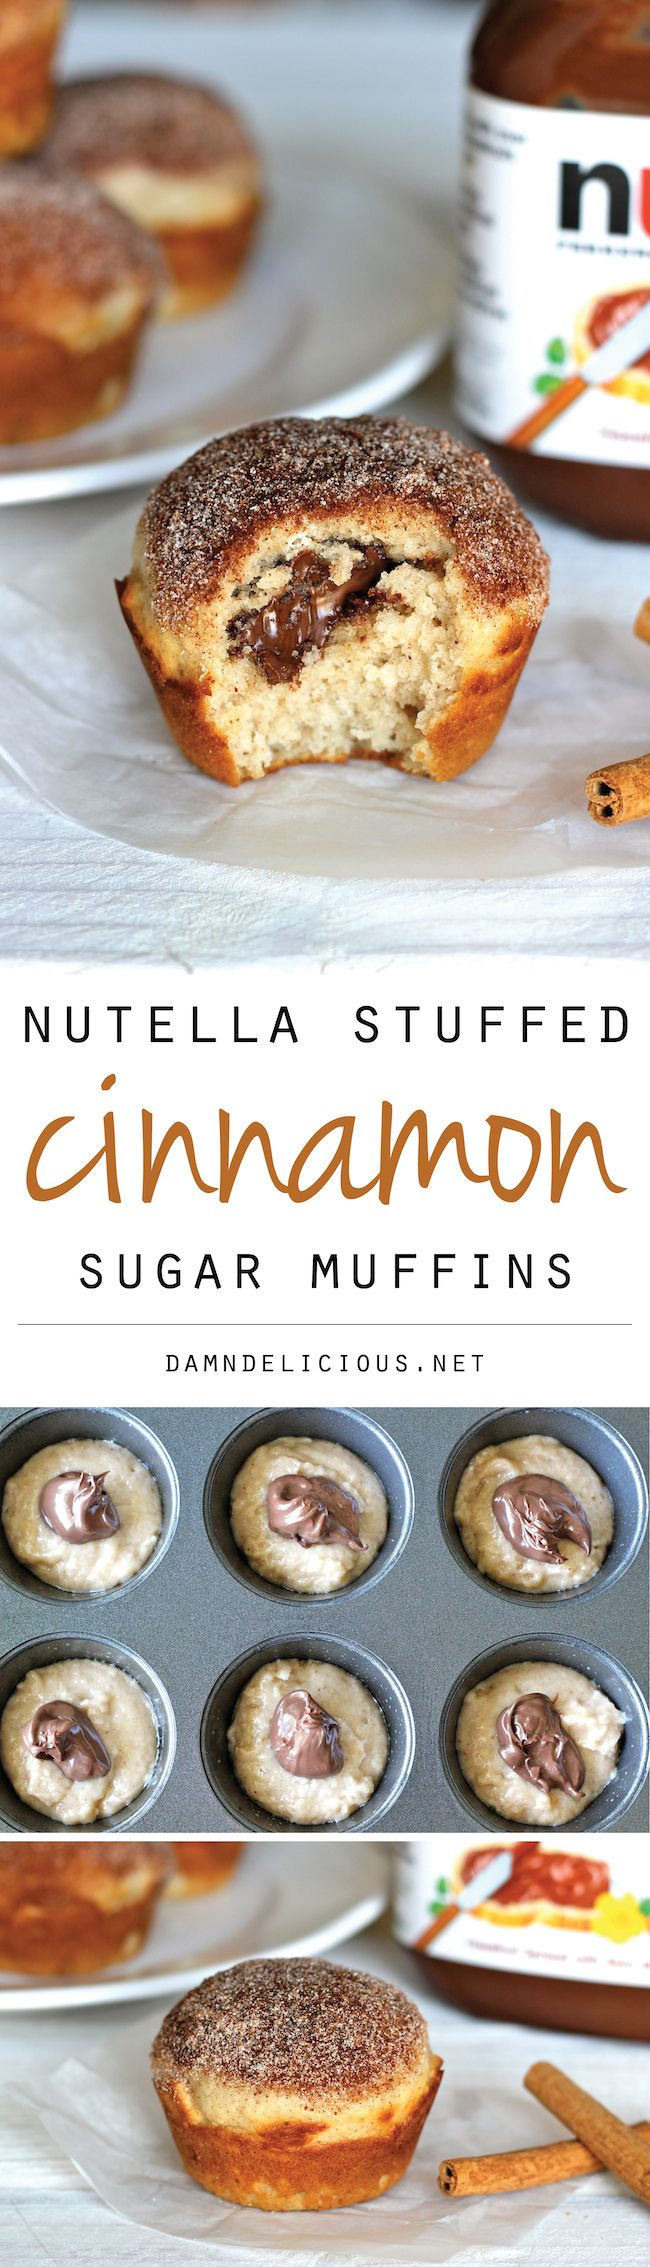 Nutella+Stuffed+Cinnamon+Sugar+Muffins+-+Cinnamon+sugar+crusted+muffin+tops+with+a+hidden+Nutella+filling+that+everyone+will+love!